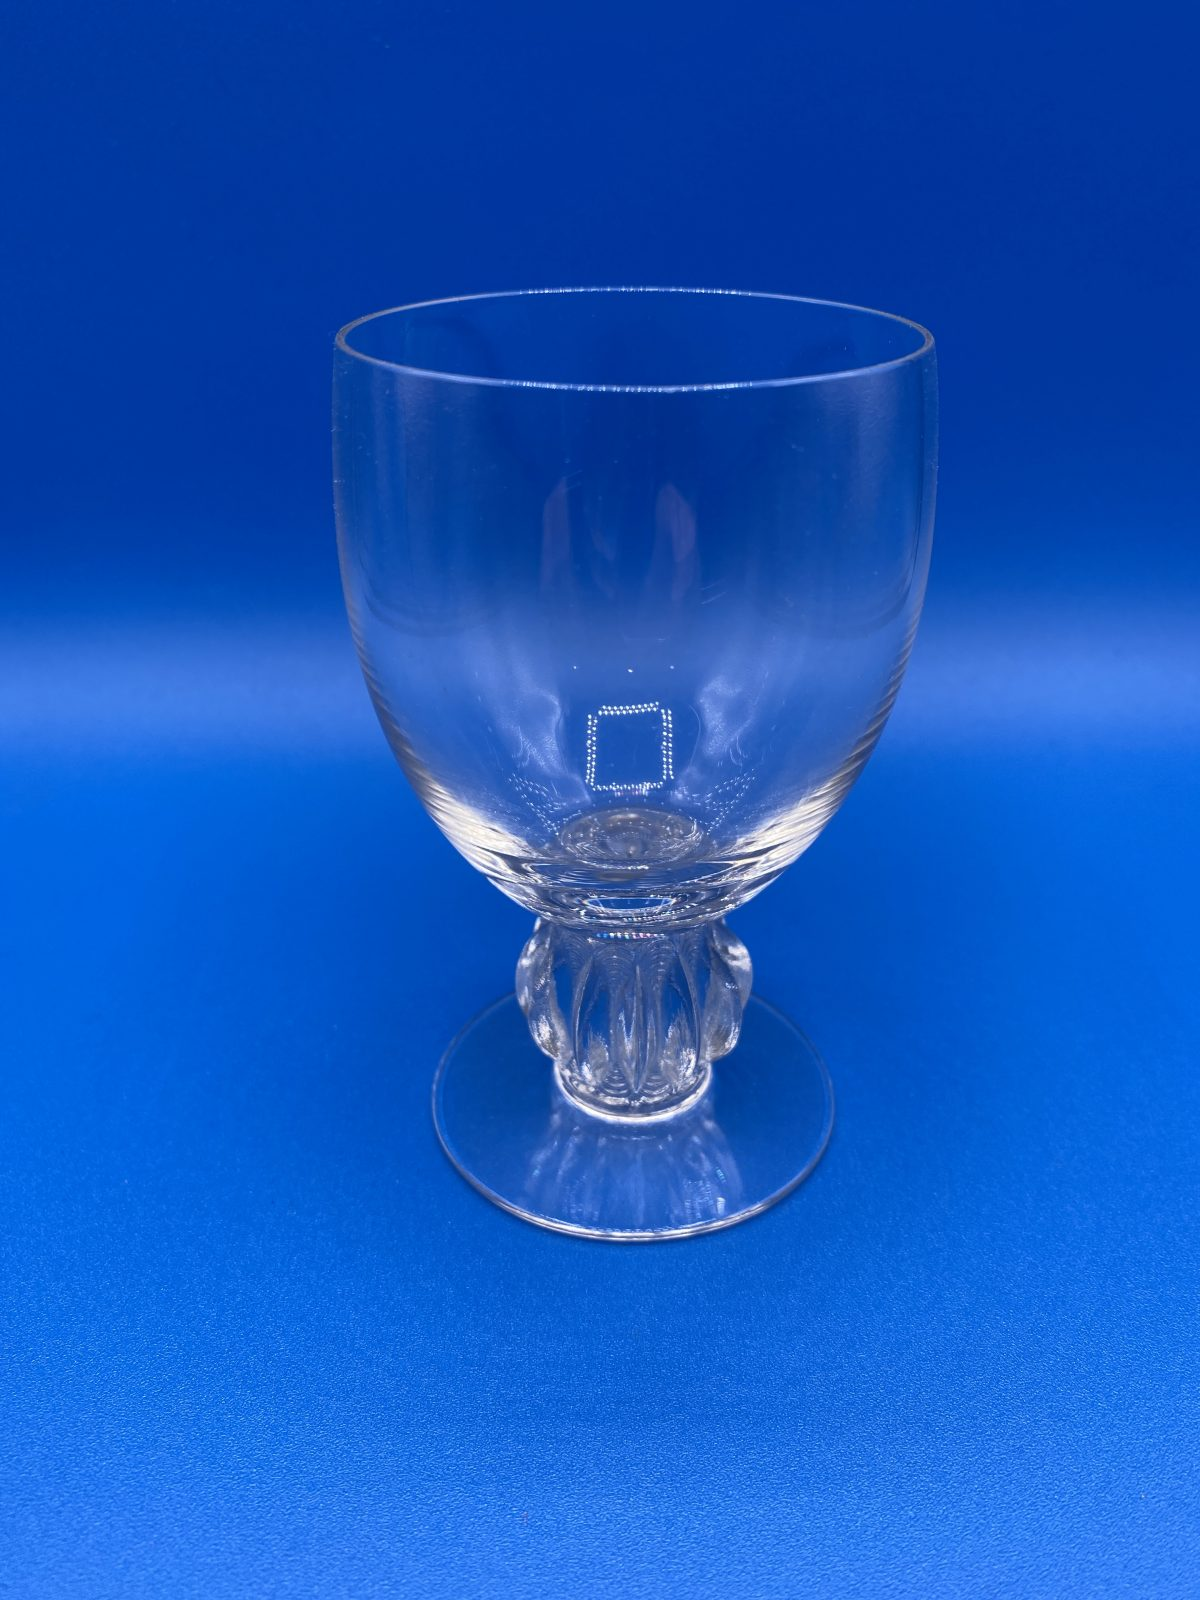 G1 - A Superb Set of 5 Rene Lalique Madeira Glasses in the Algers Pattern, c1940, all signed to base.  £495